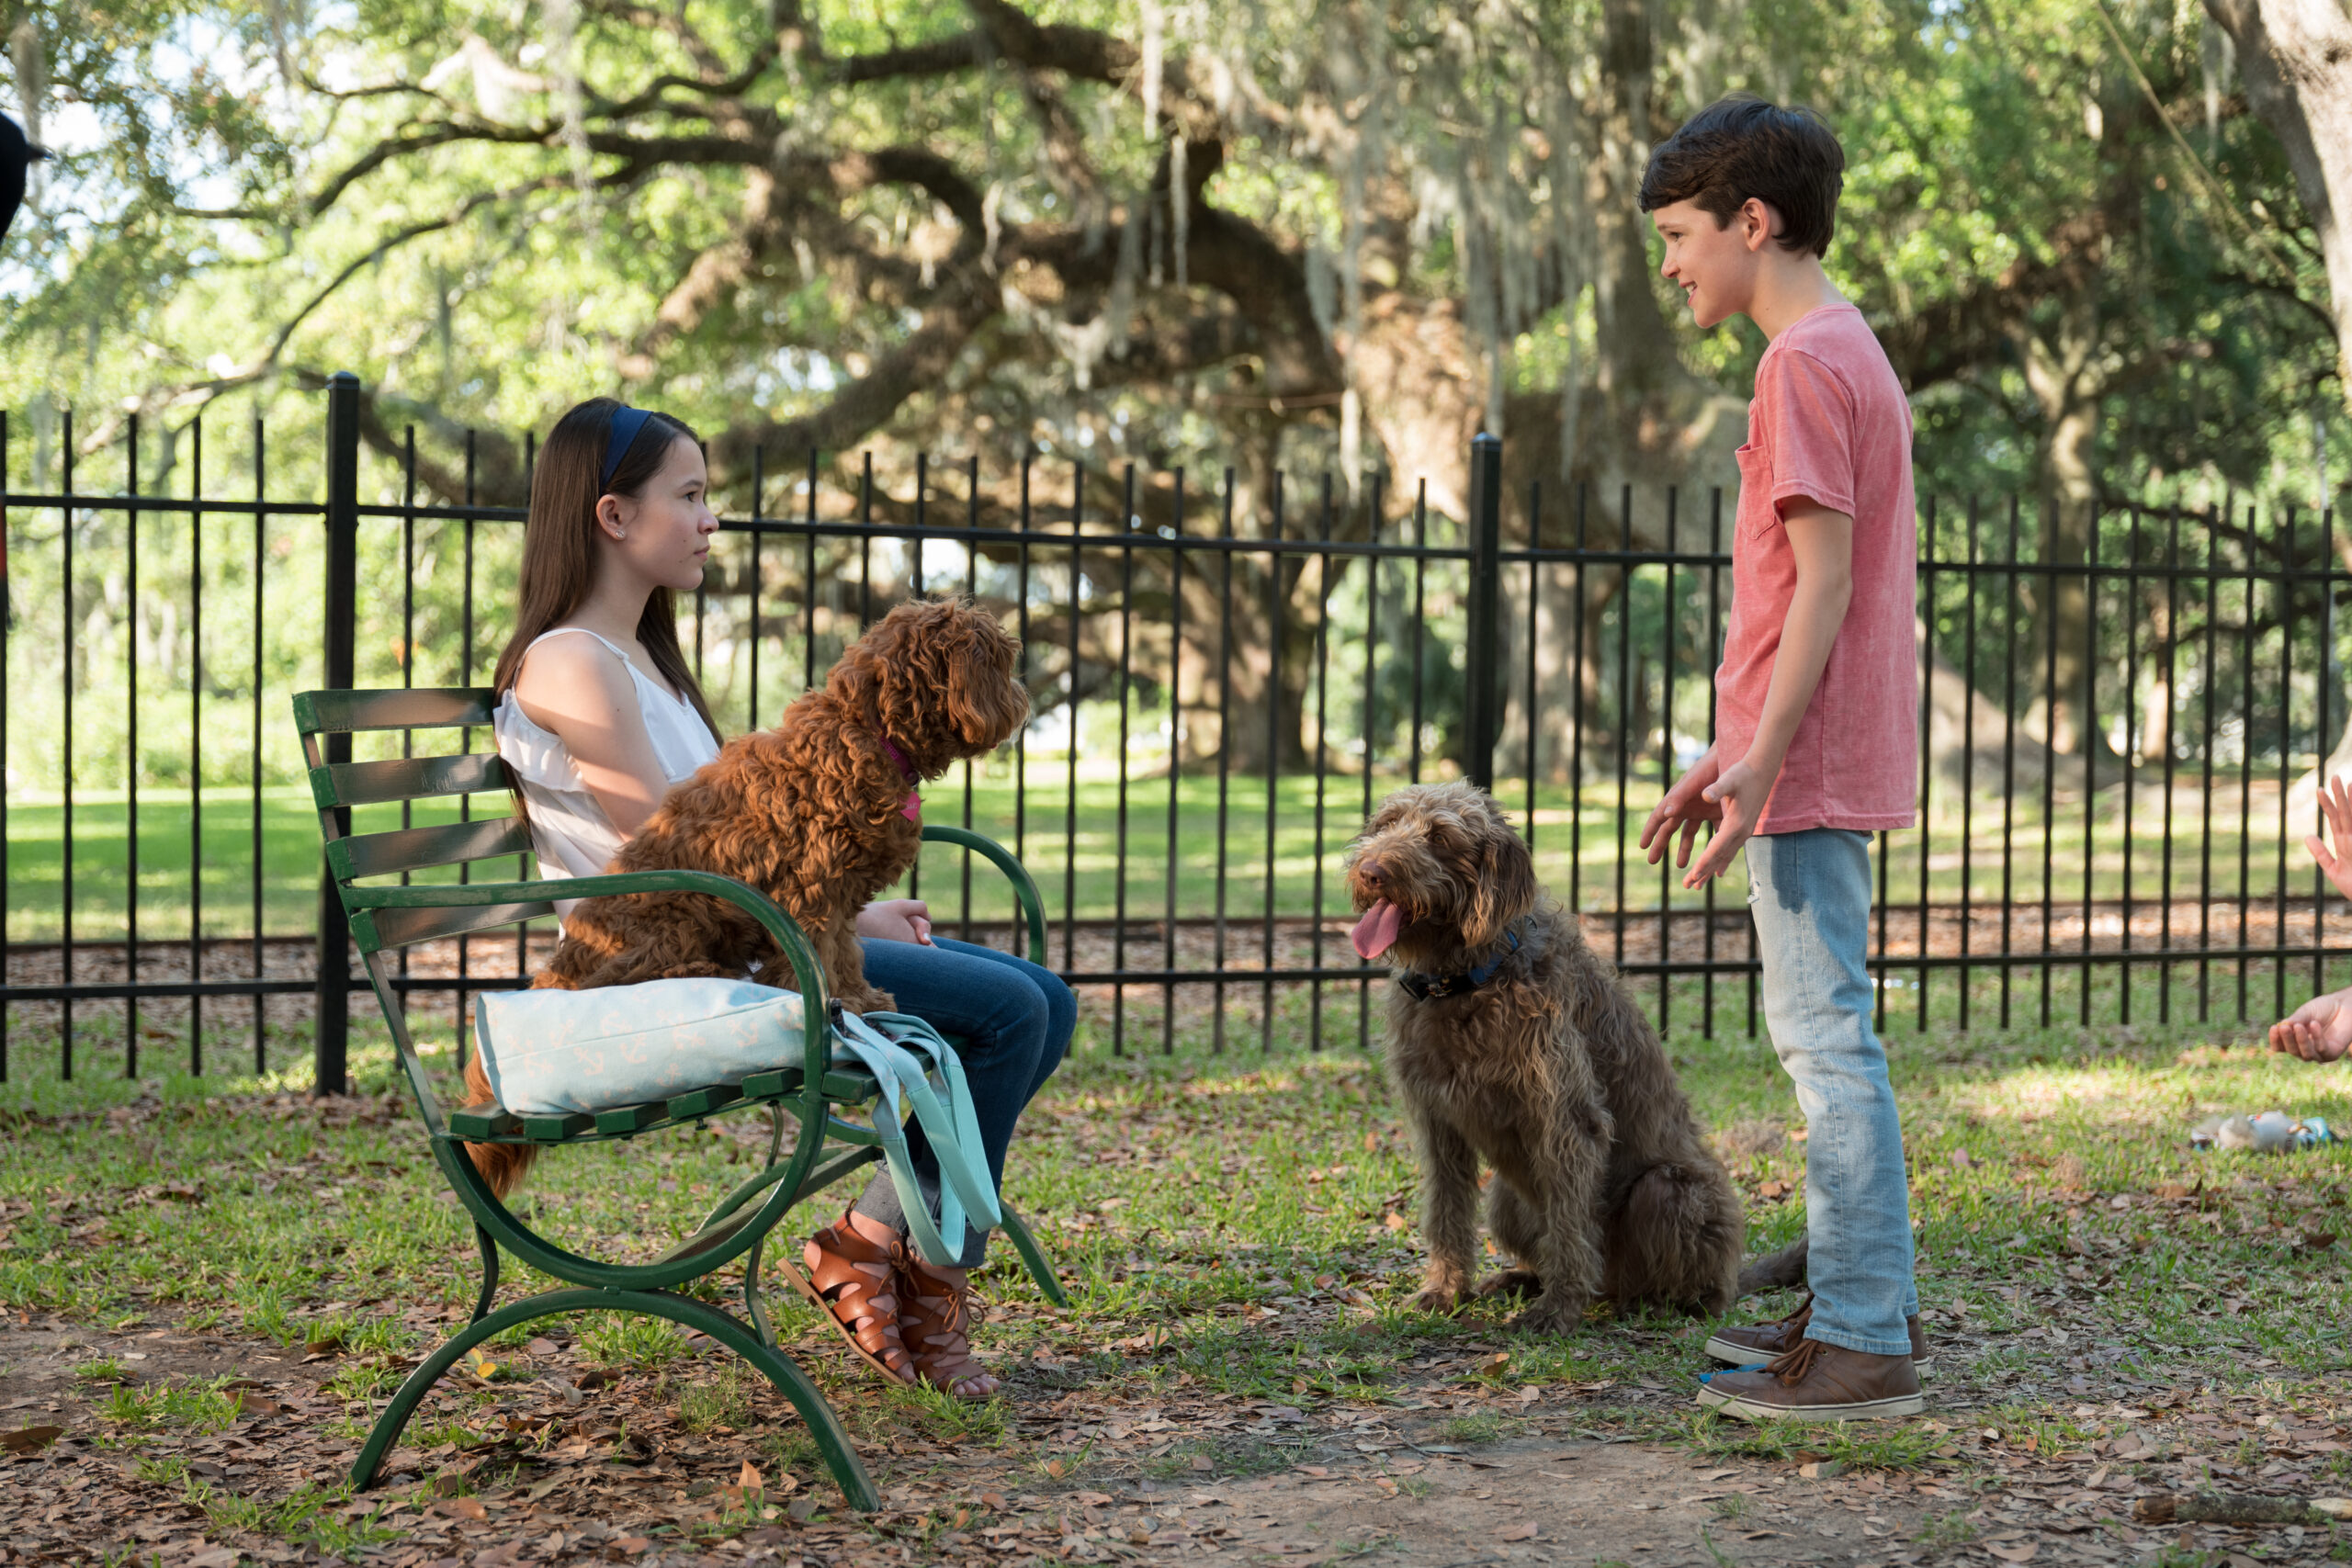 Oliver, Henry, and Sophie in Think Like a Dog